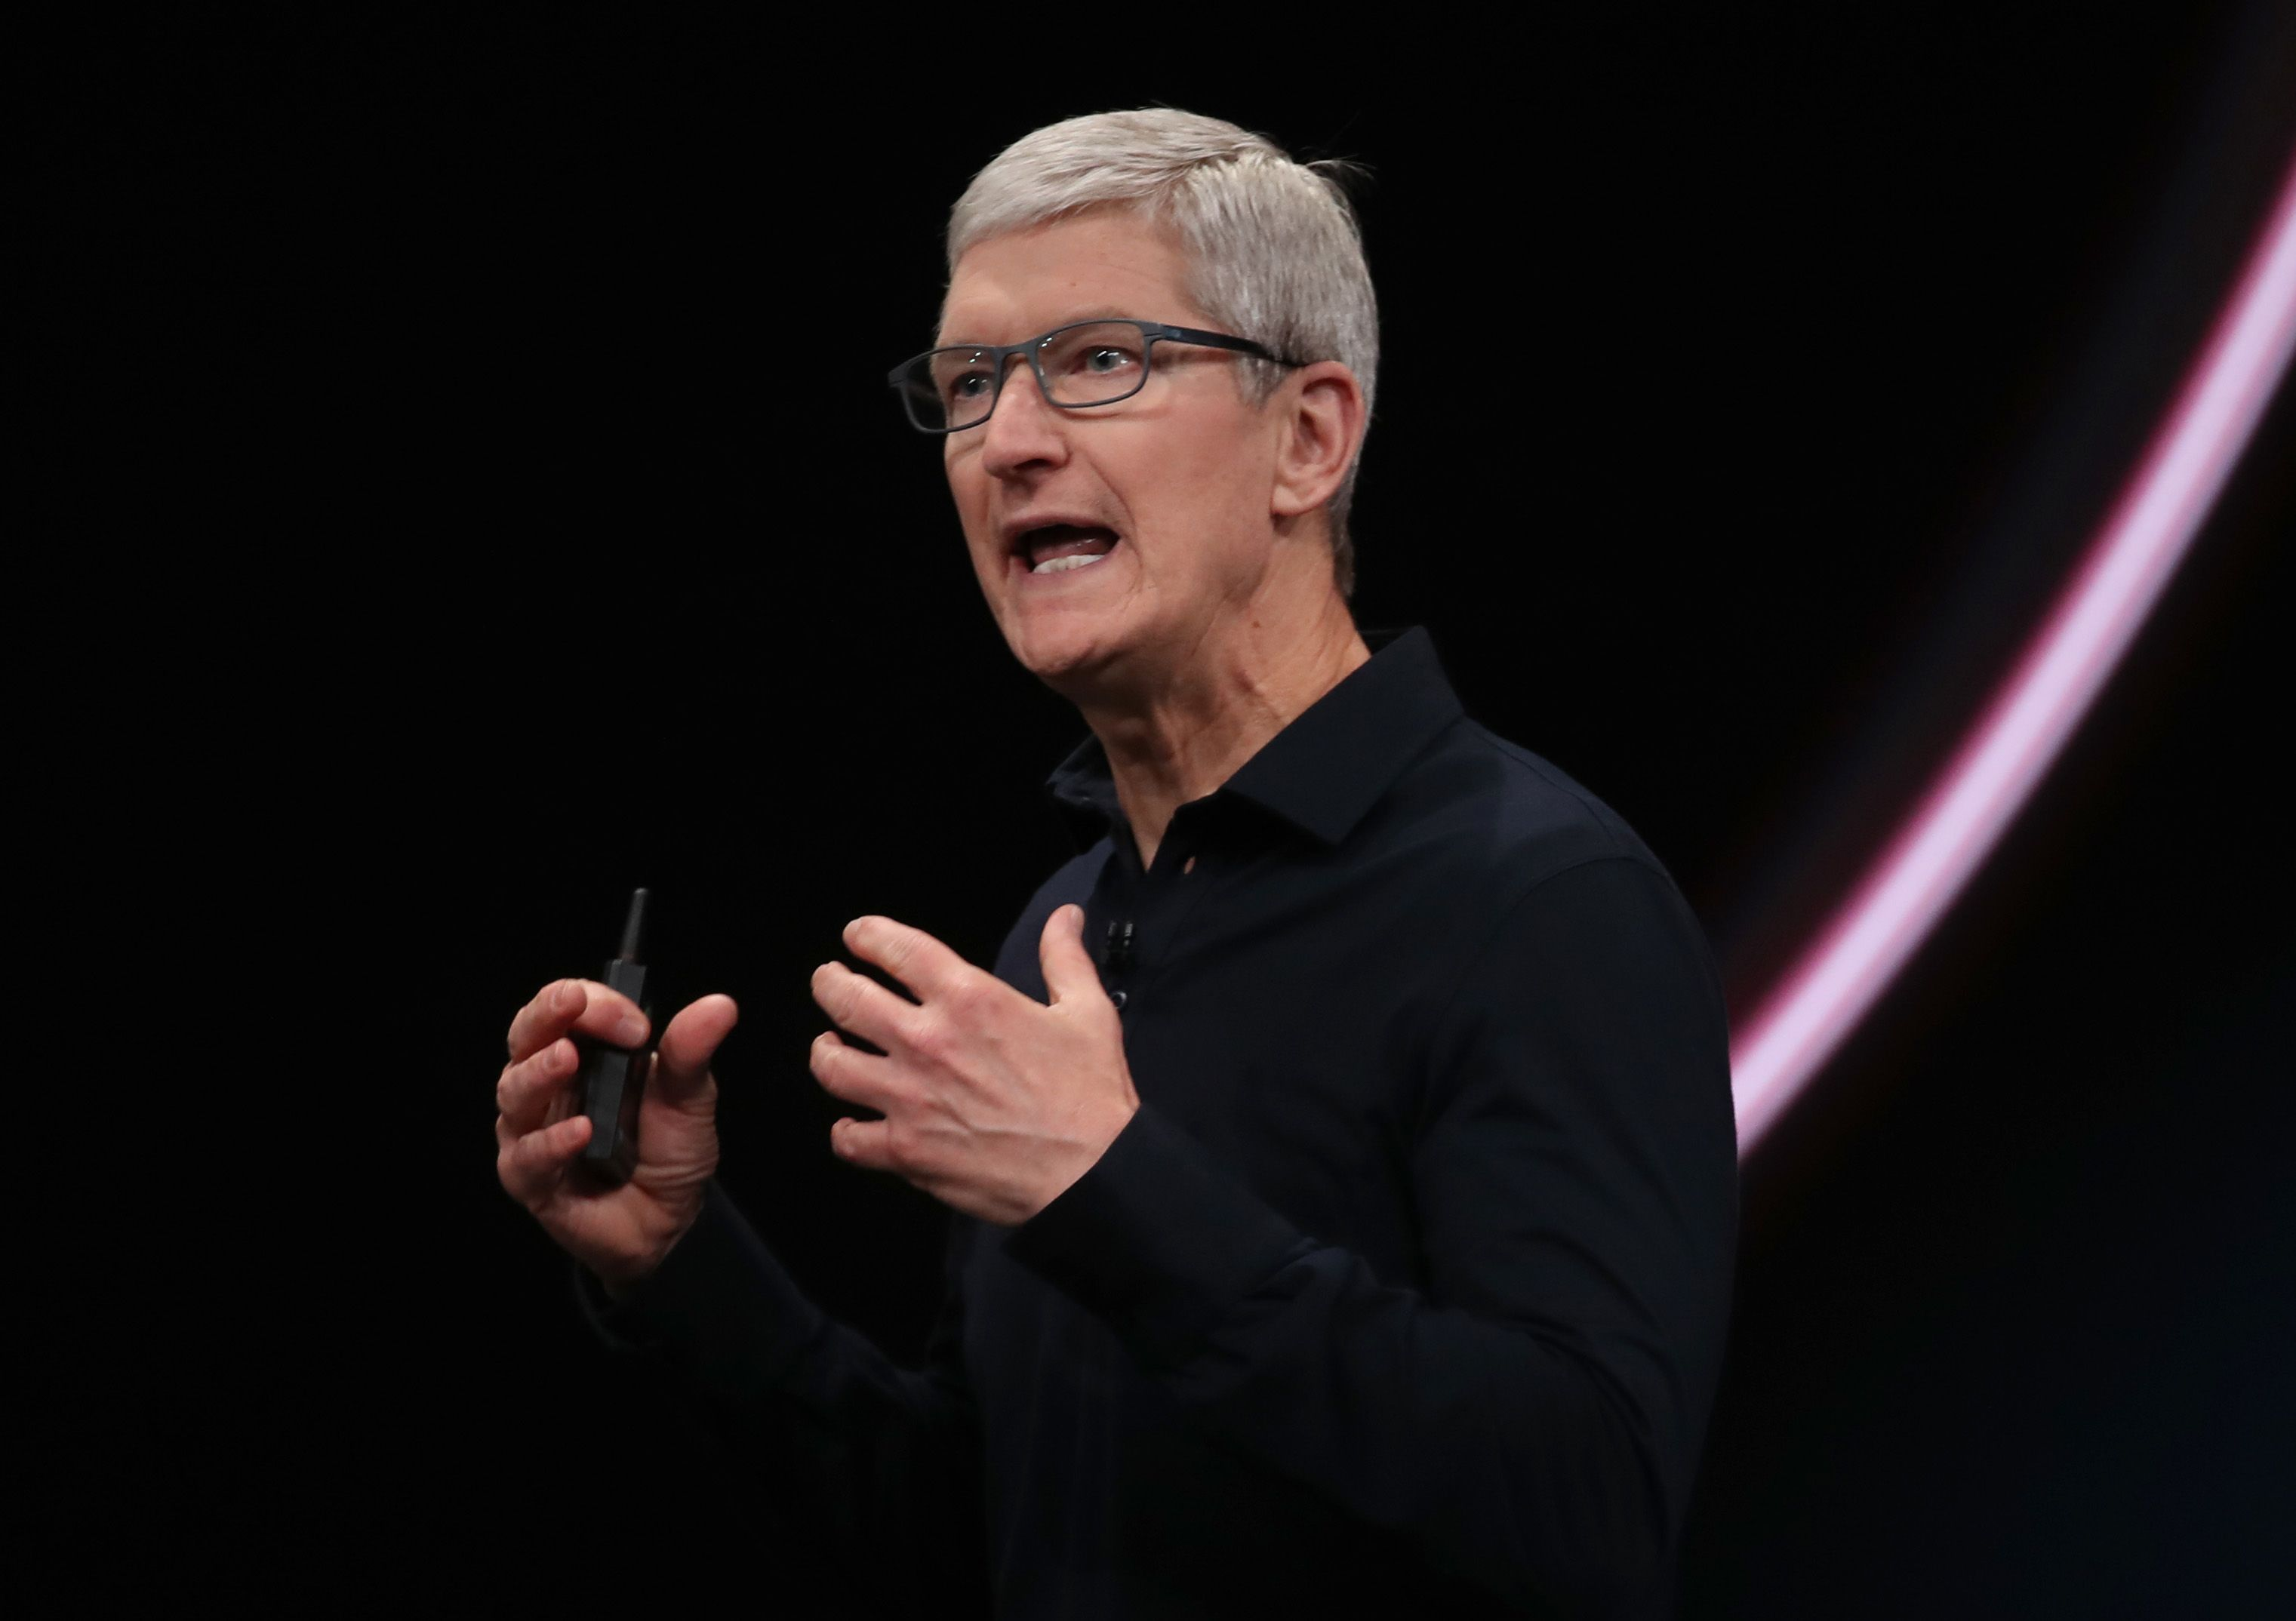 Cook says Apple is not a monopoly as government begins antitrust probe